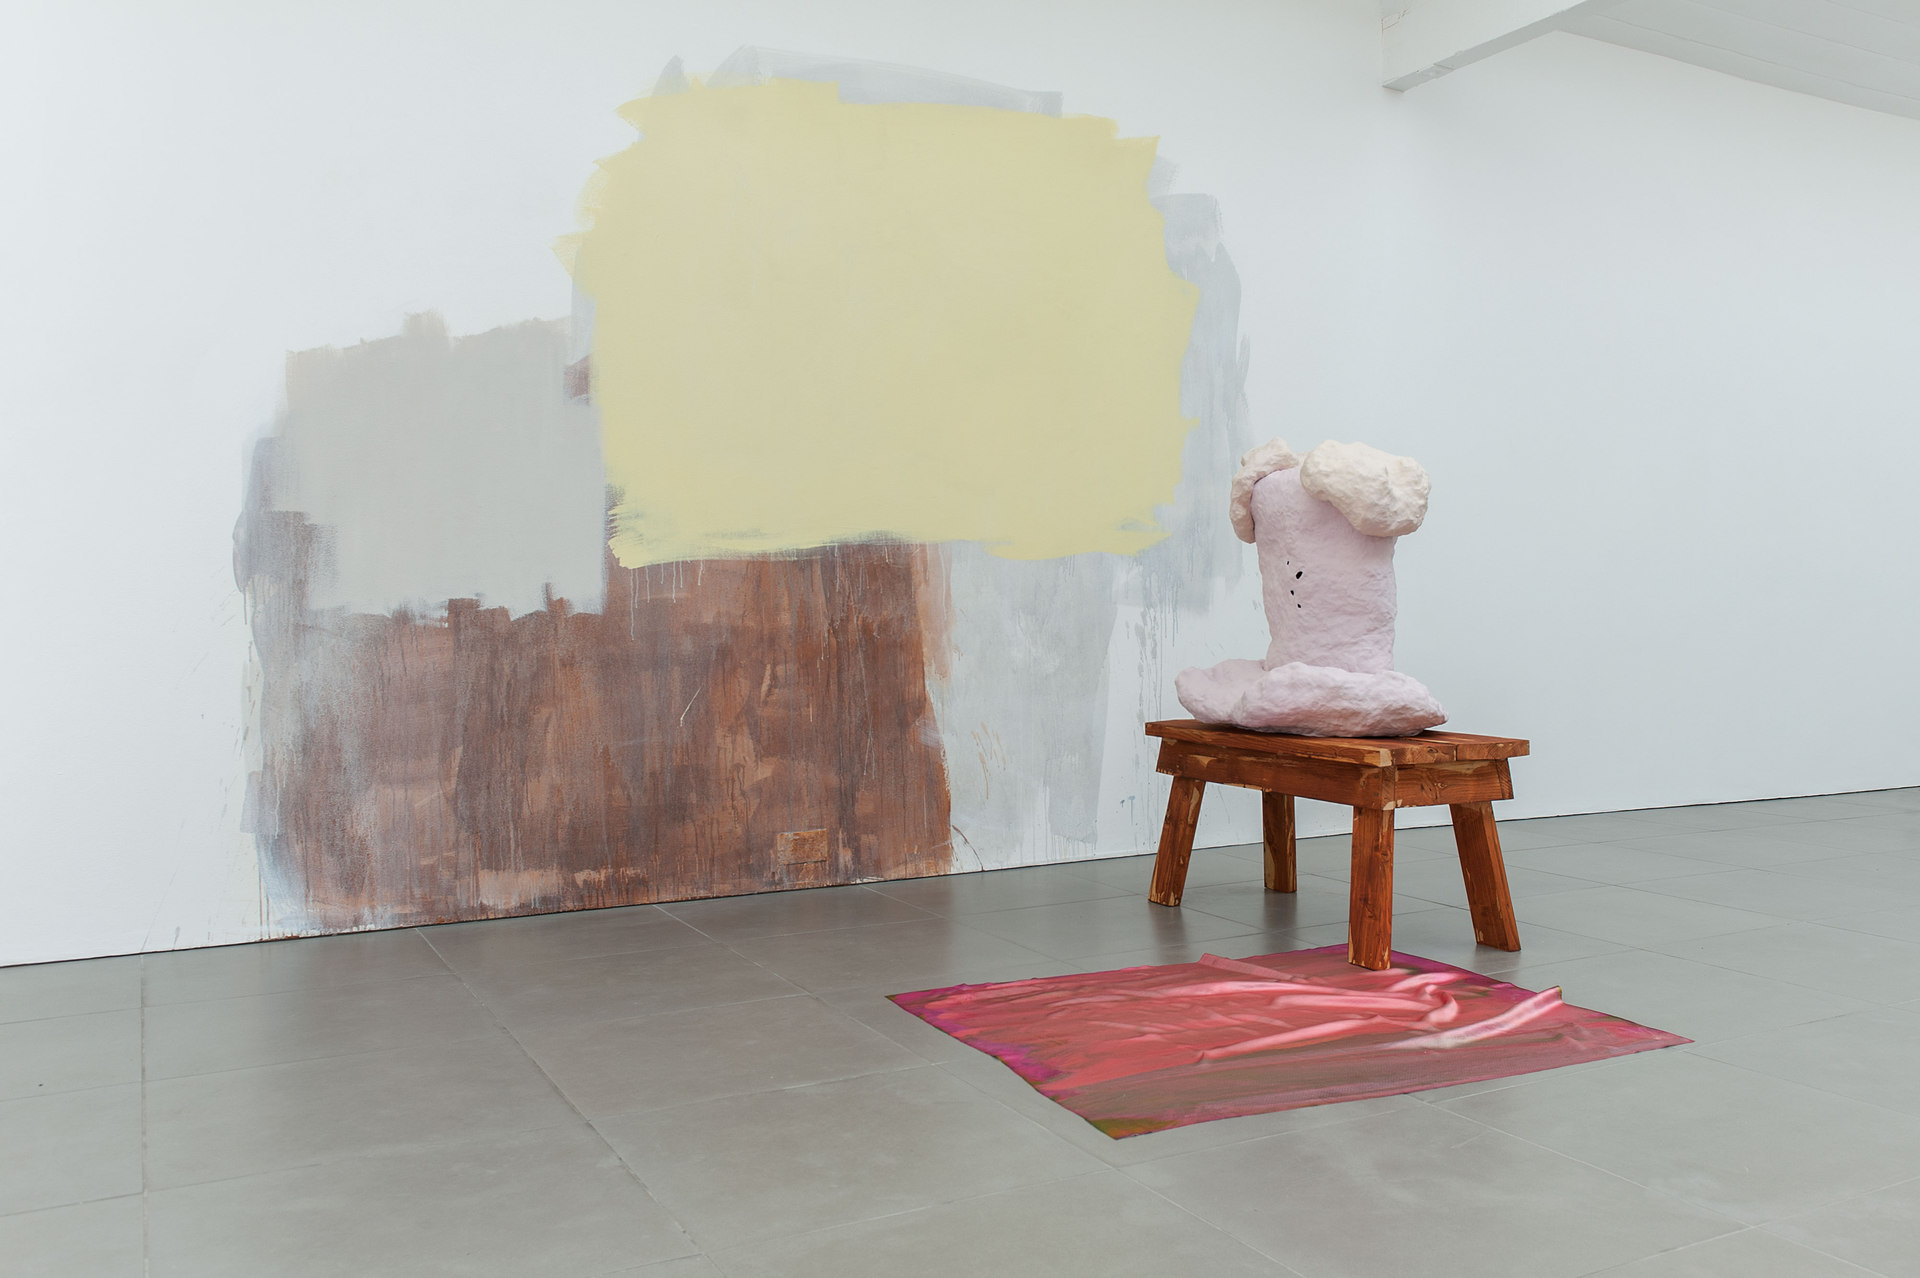 Exhibition, 2014, Celia Hempton, digital print on silk satin, 60 x 72 cm, acrylic paint on wall, Katie Cuddon, painted ceramic, painted wood, 100 x 123 x 54 cm, Cell Project Space